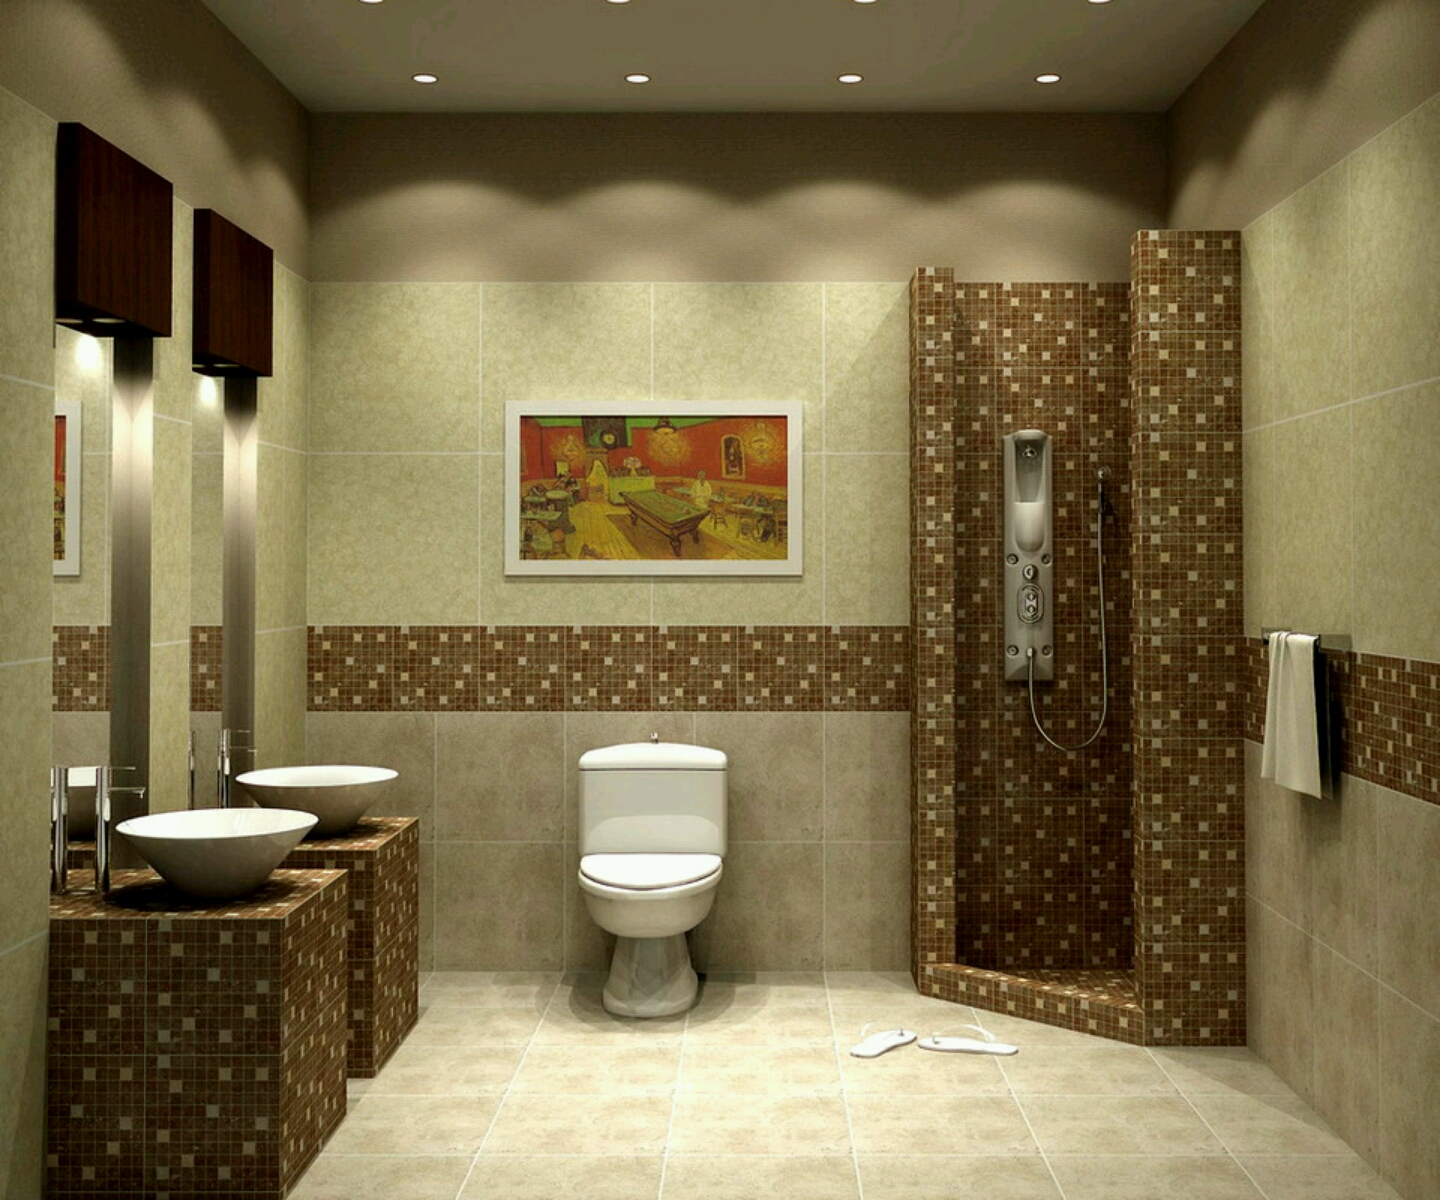 New Home Designs Latest.: Luxury Bathrooms Designs Ideas